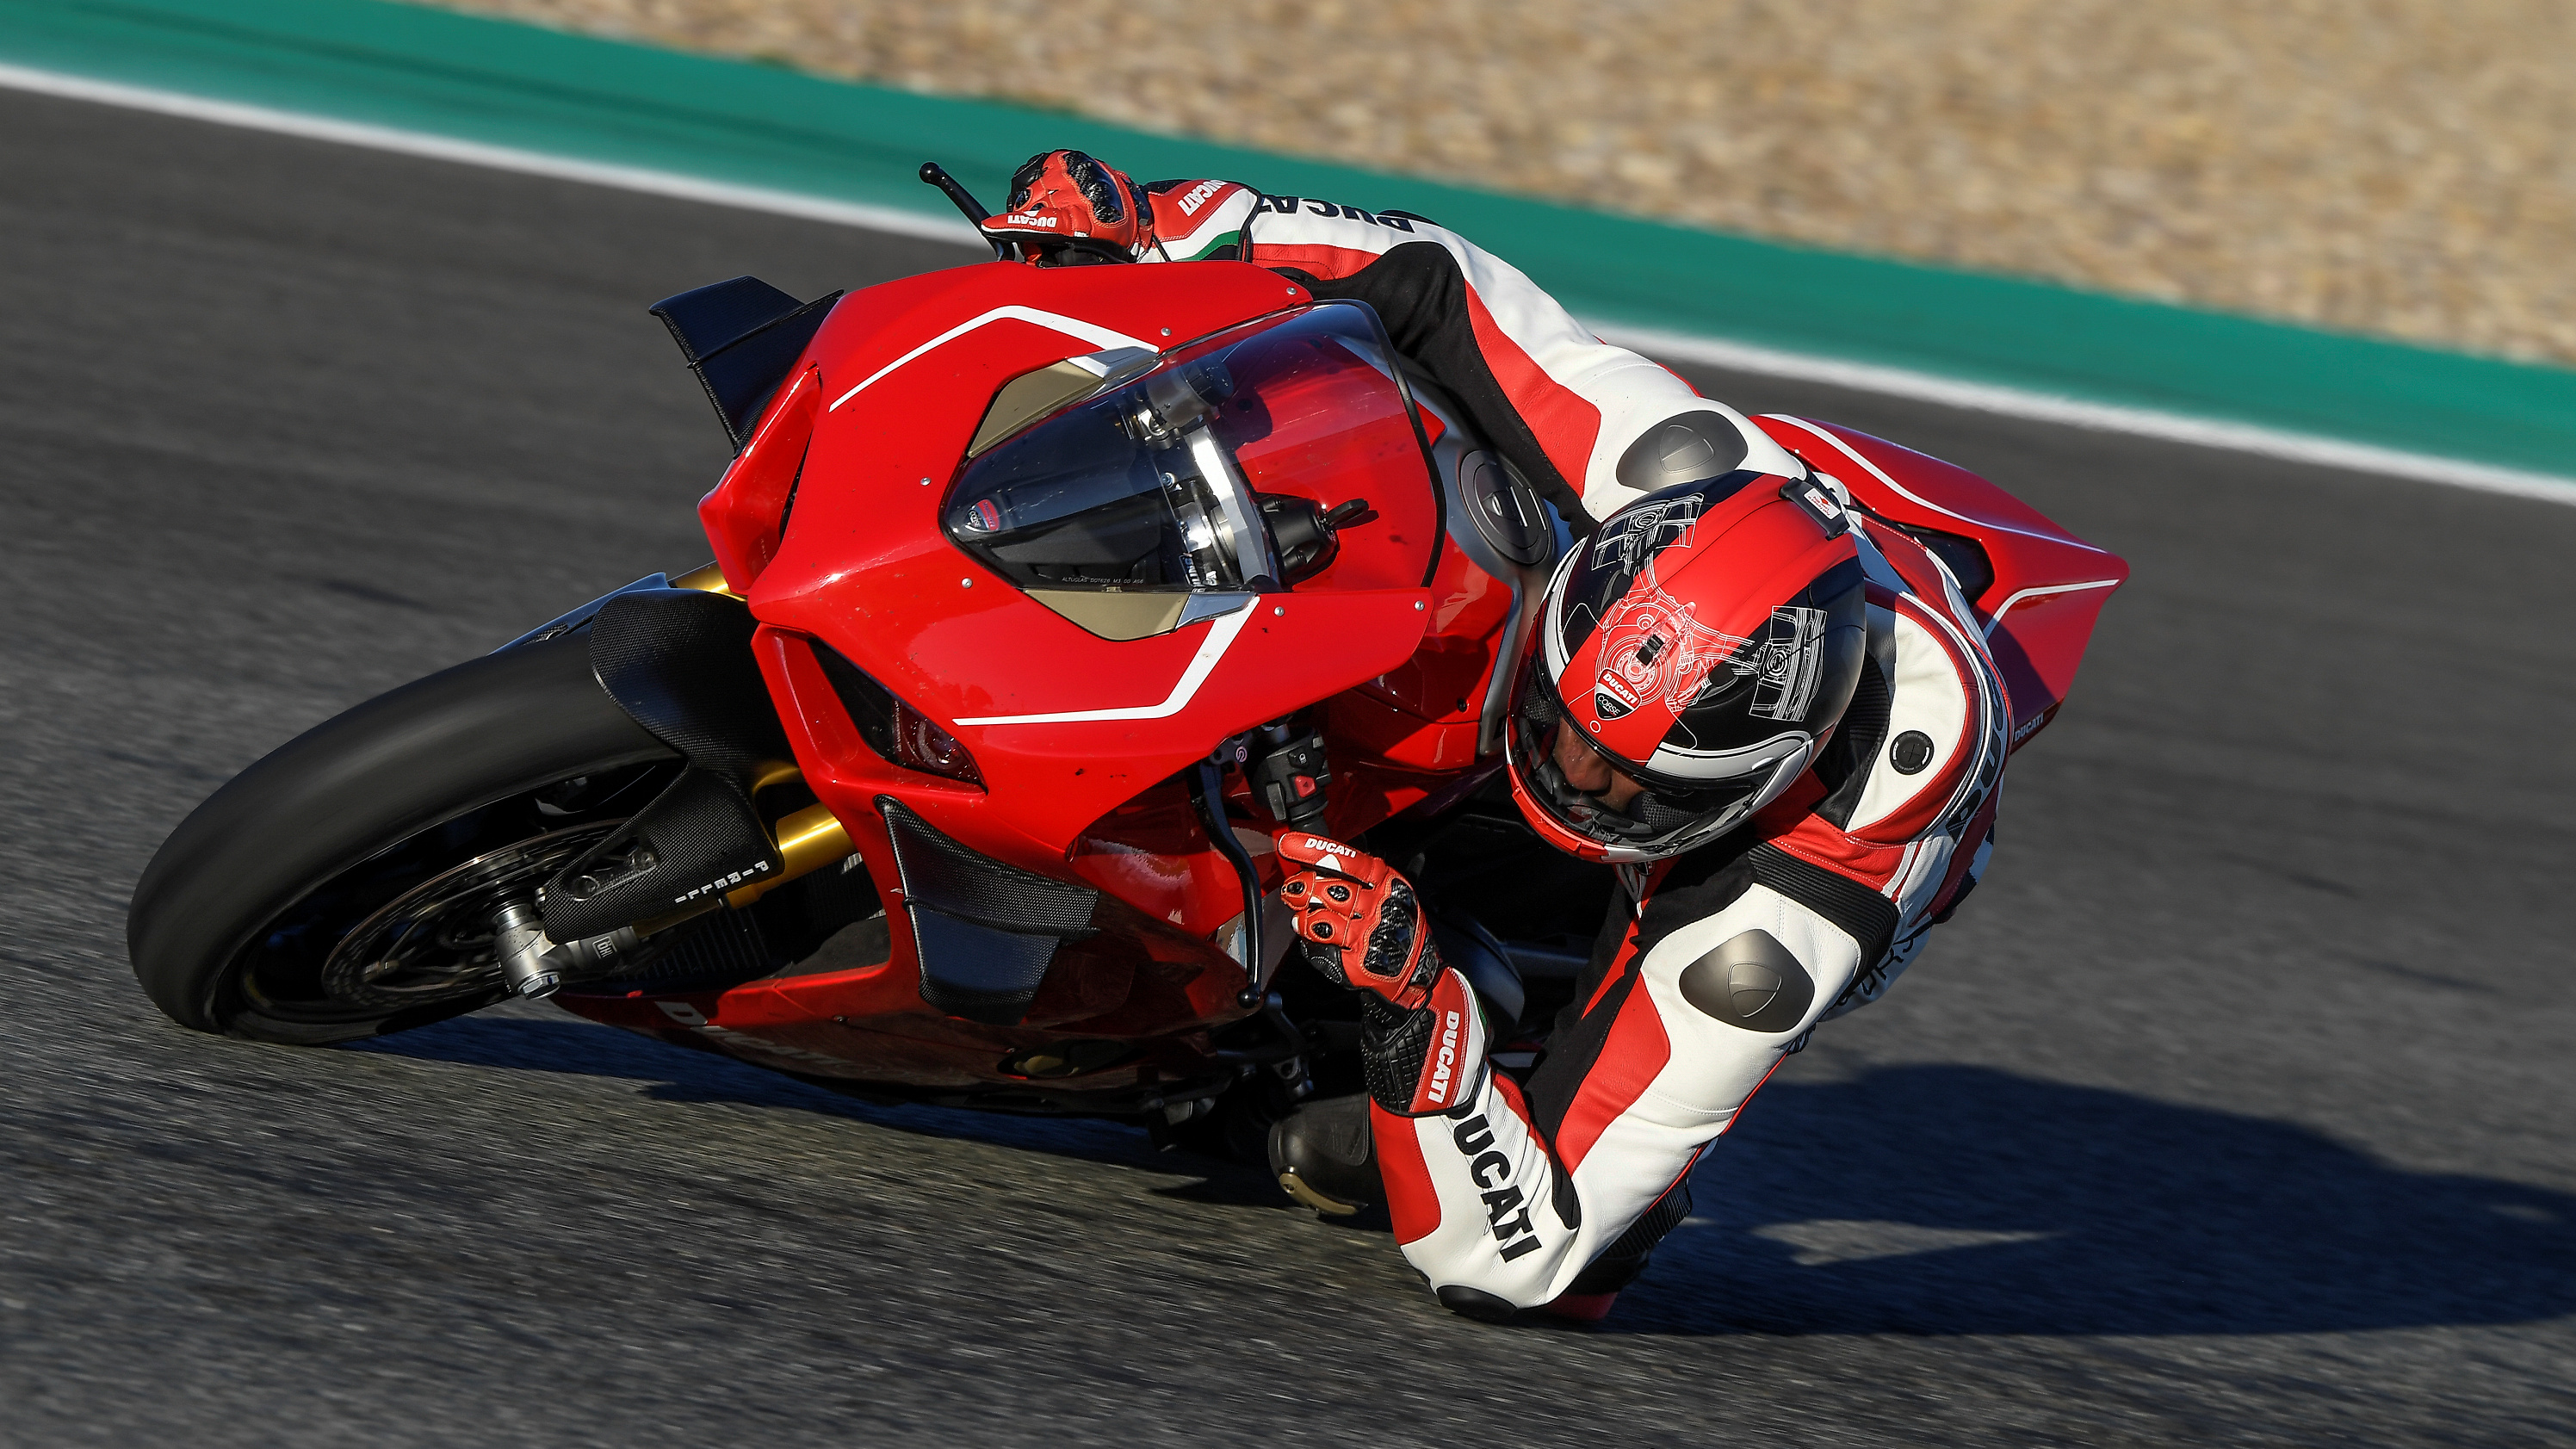 2019 Ducati Panigale V4 R | Top Speed